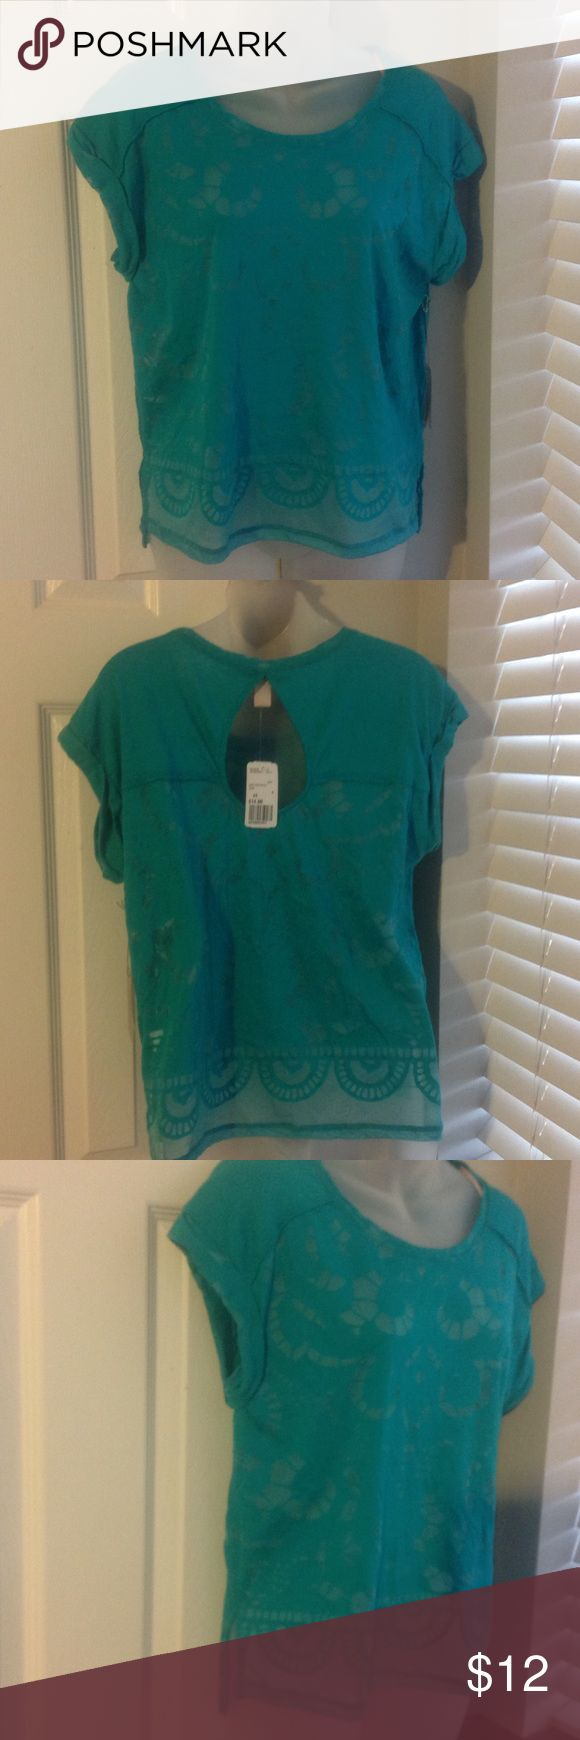 Forever 21 US S green see through women's top New short sleeve top Forever 21 Tops Blouses